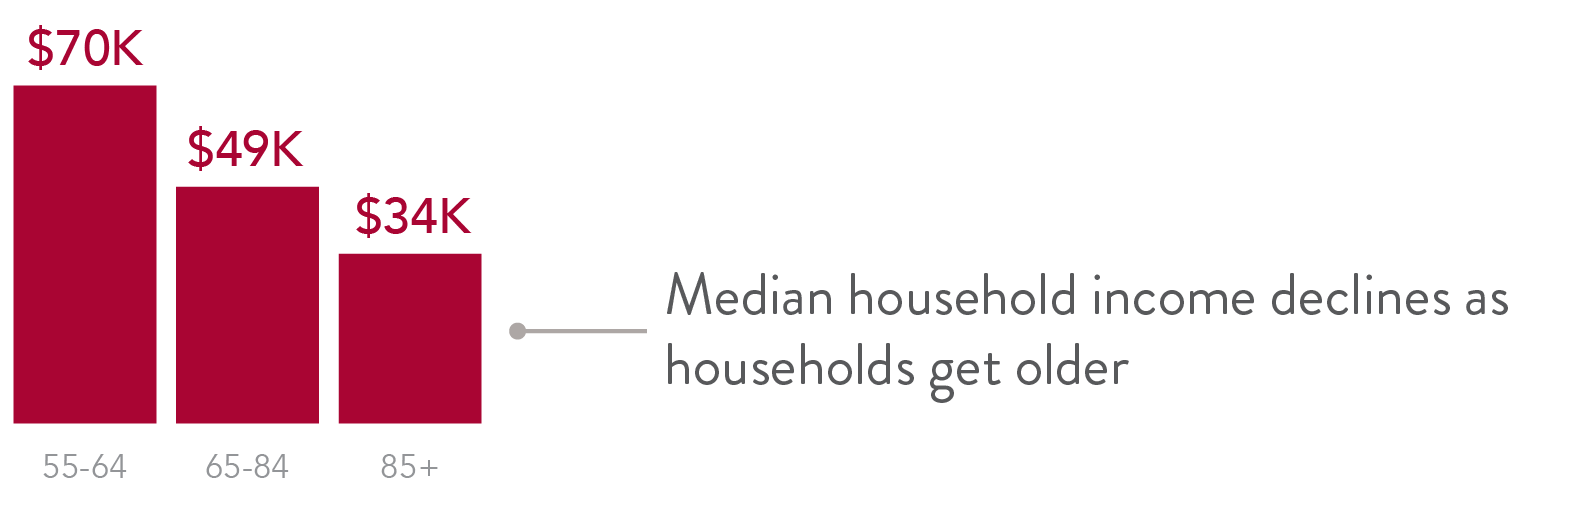 Median household income declines as households get older